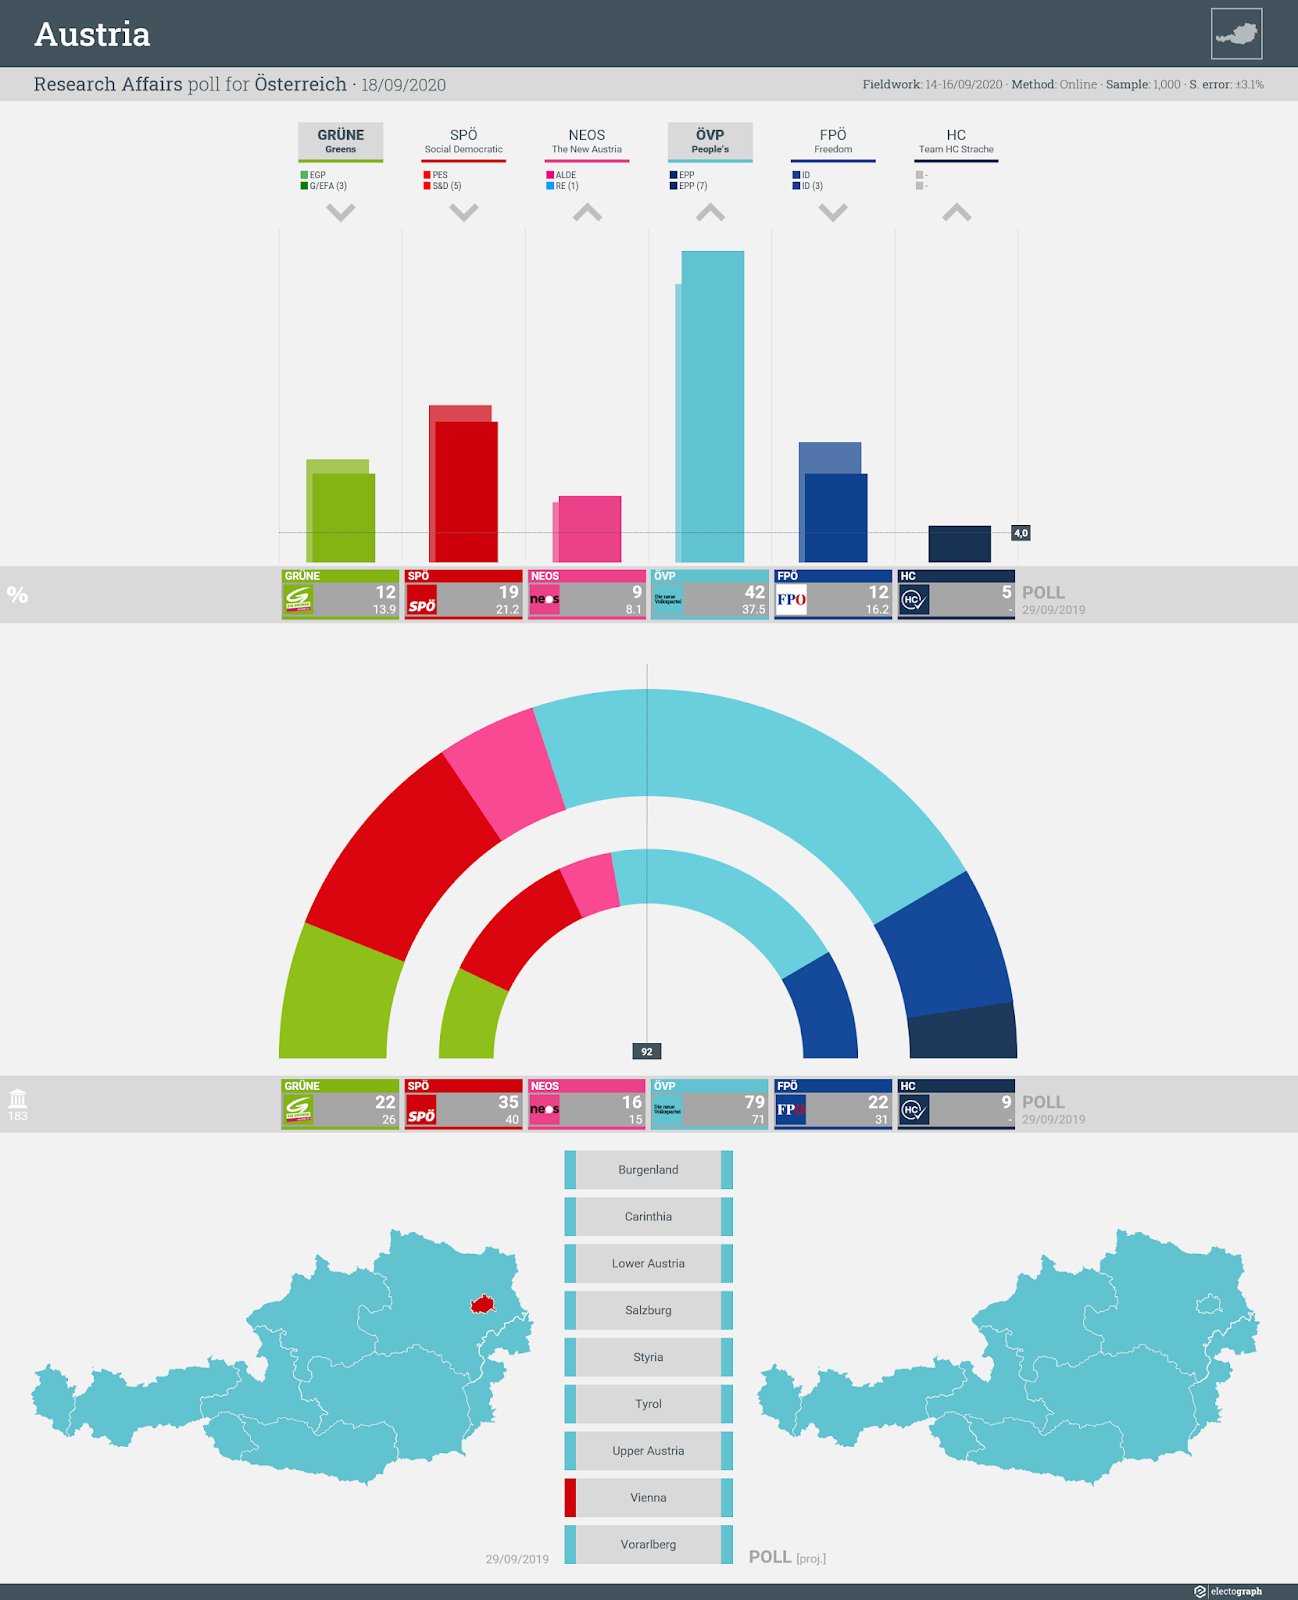 AUSTRIA: Research Affairs poll chart for Österreich, 18 September 2020